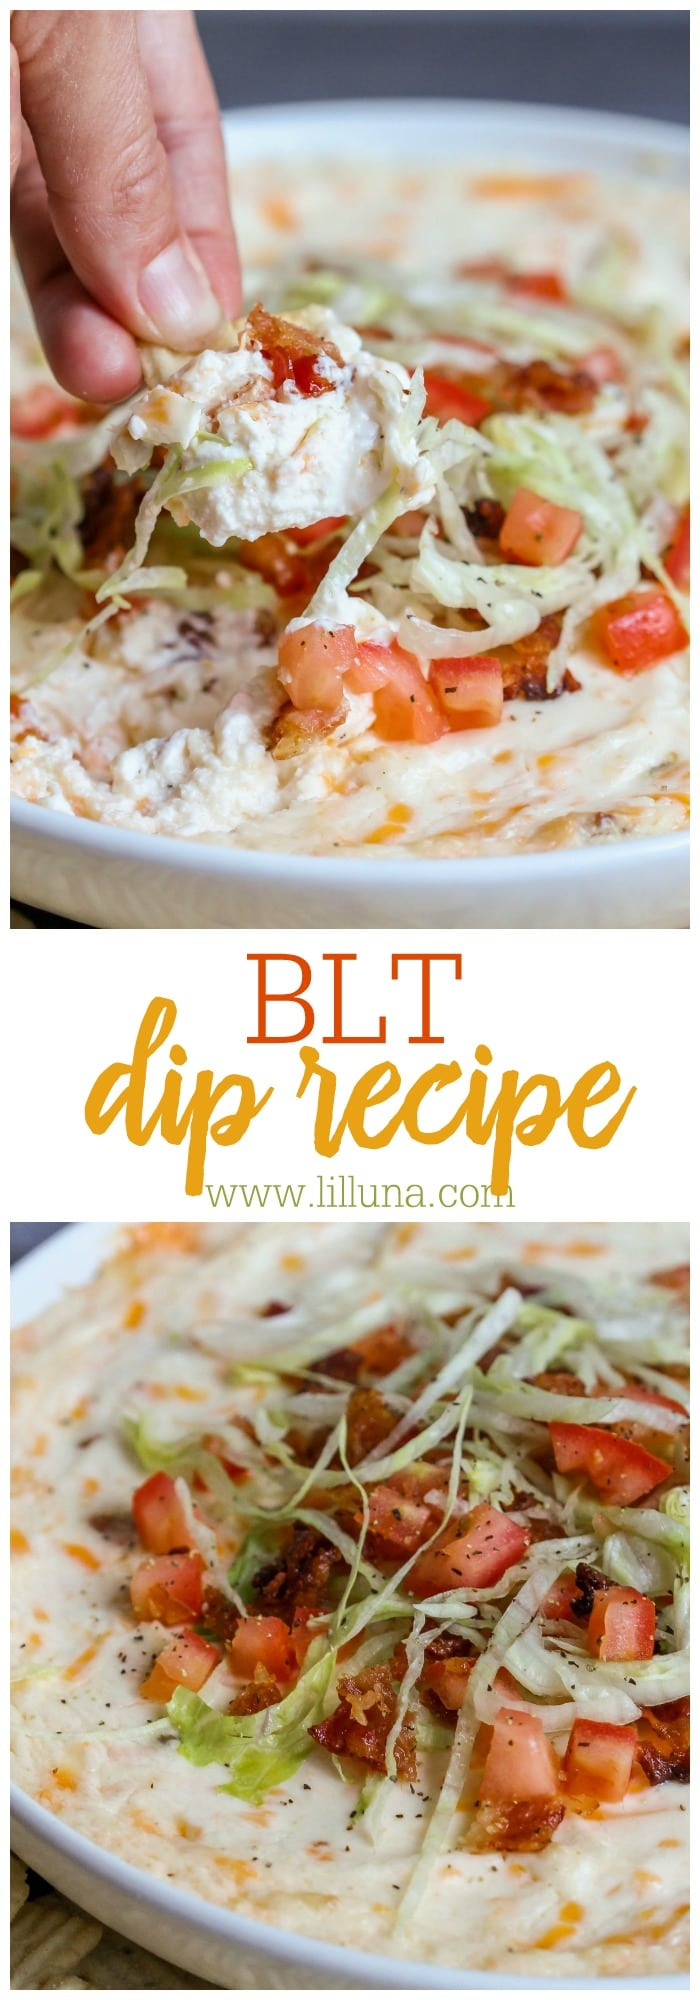 BLT-dip-collage